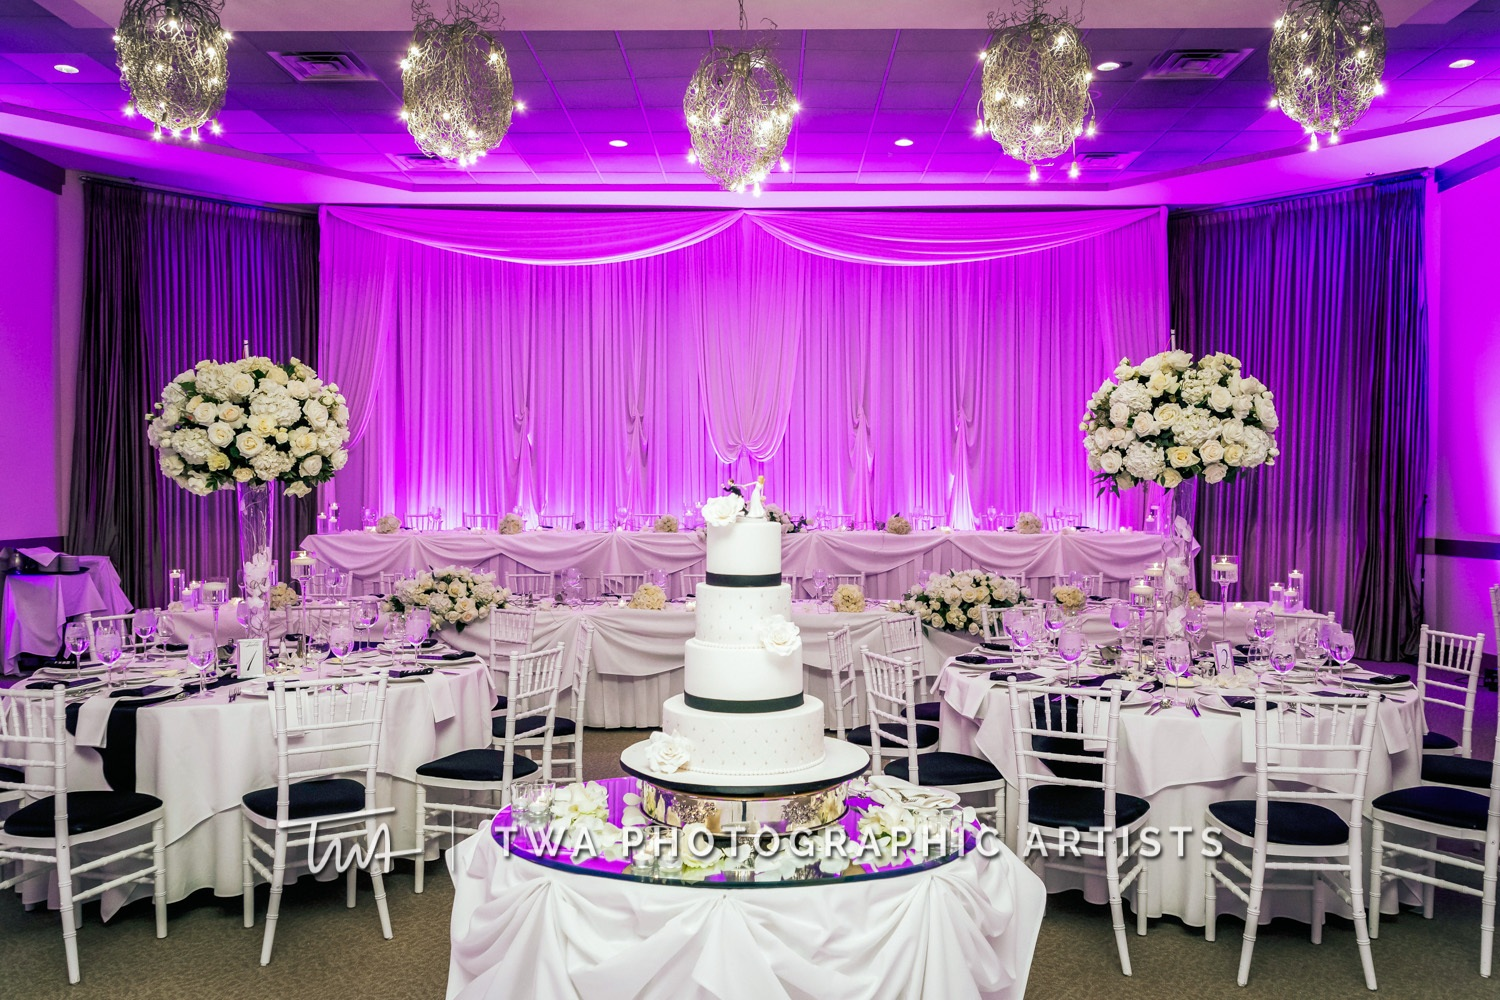 Chicago-Wedding-Photographer-TWA-Photographic-Artists-Belvedere-Banquets_Anast_Campanella_MiC_ME-1243